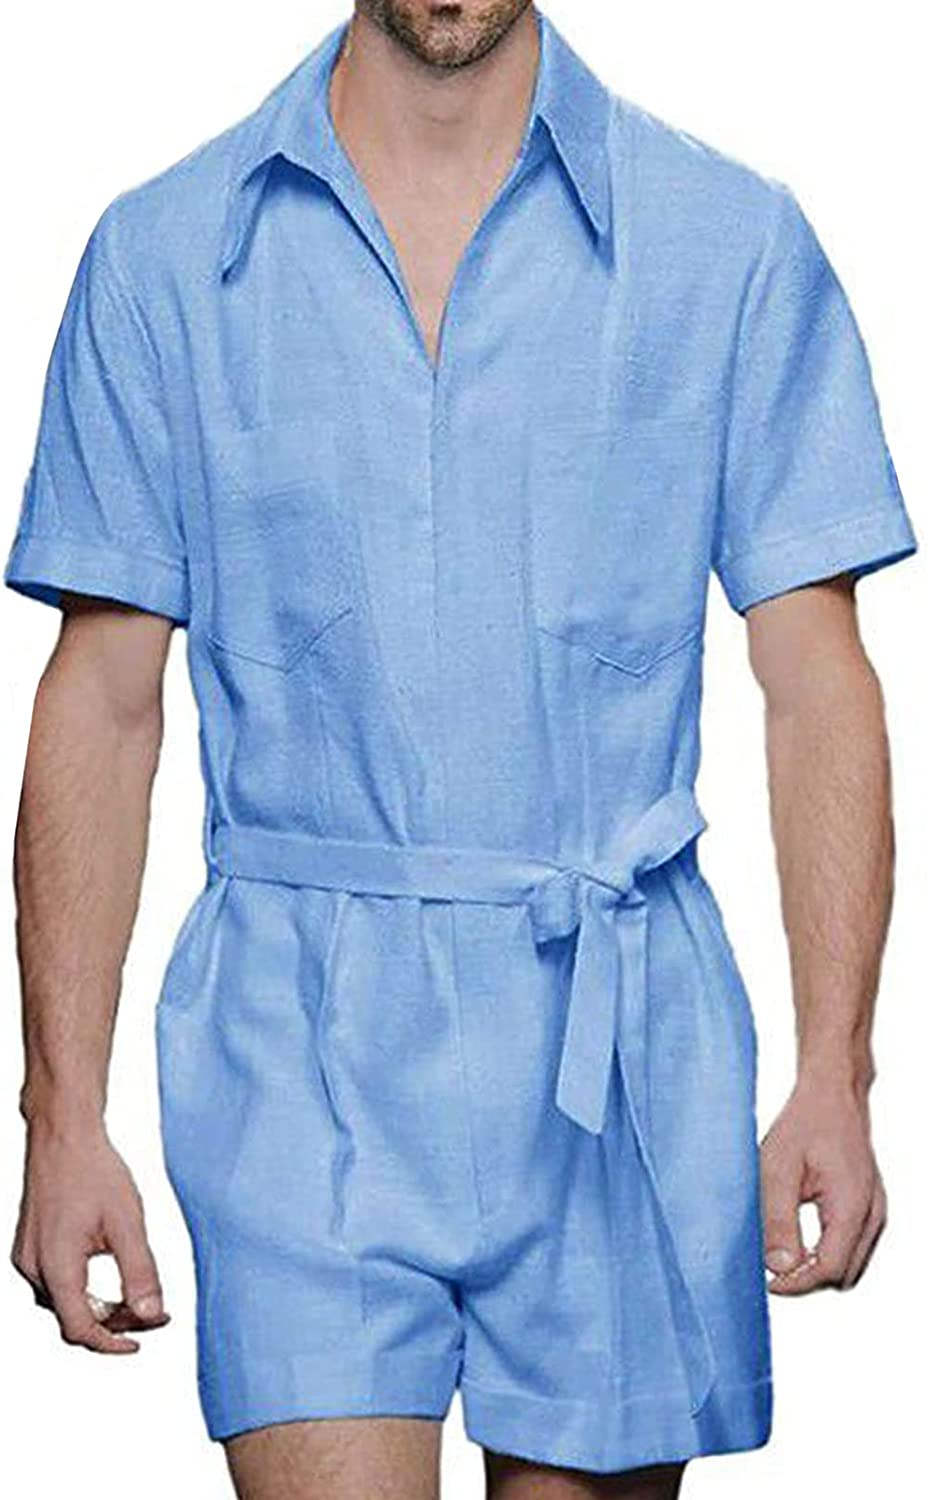 Men Romper Jumpsuit One Piece Sleeve Short Phoenix Mall Overalls Outfit discount Butto